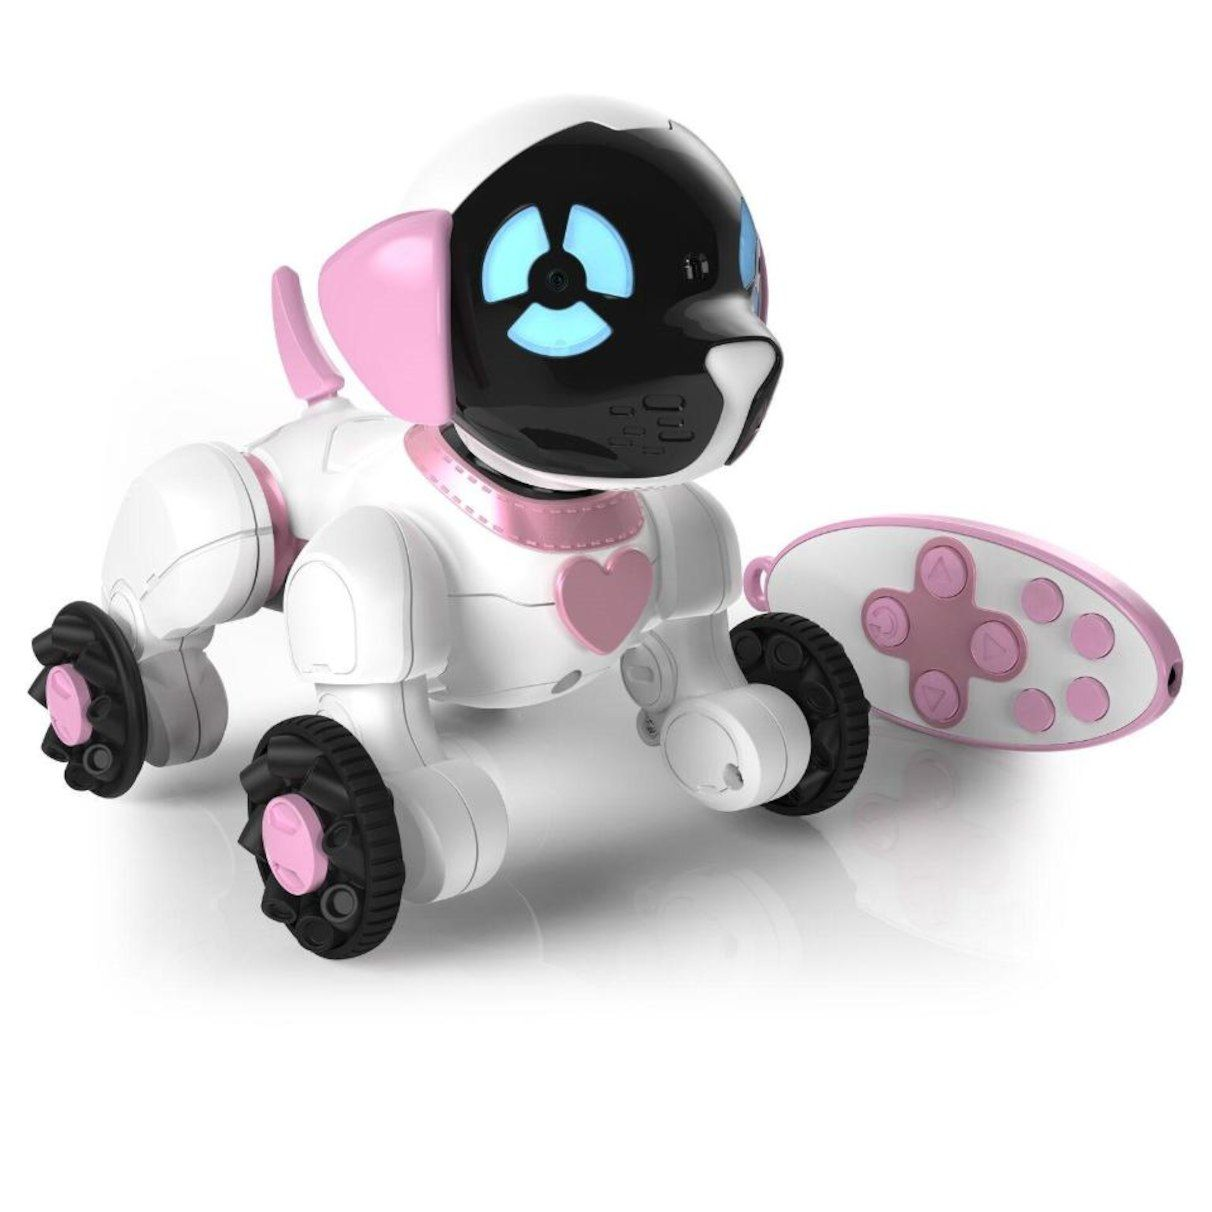 Wowwee Chippies Robot Dog With Remote Control Toy Chippella